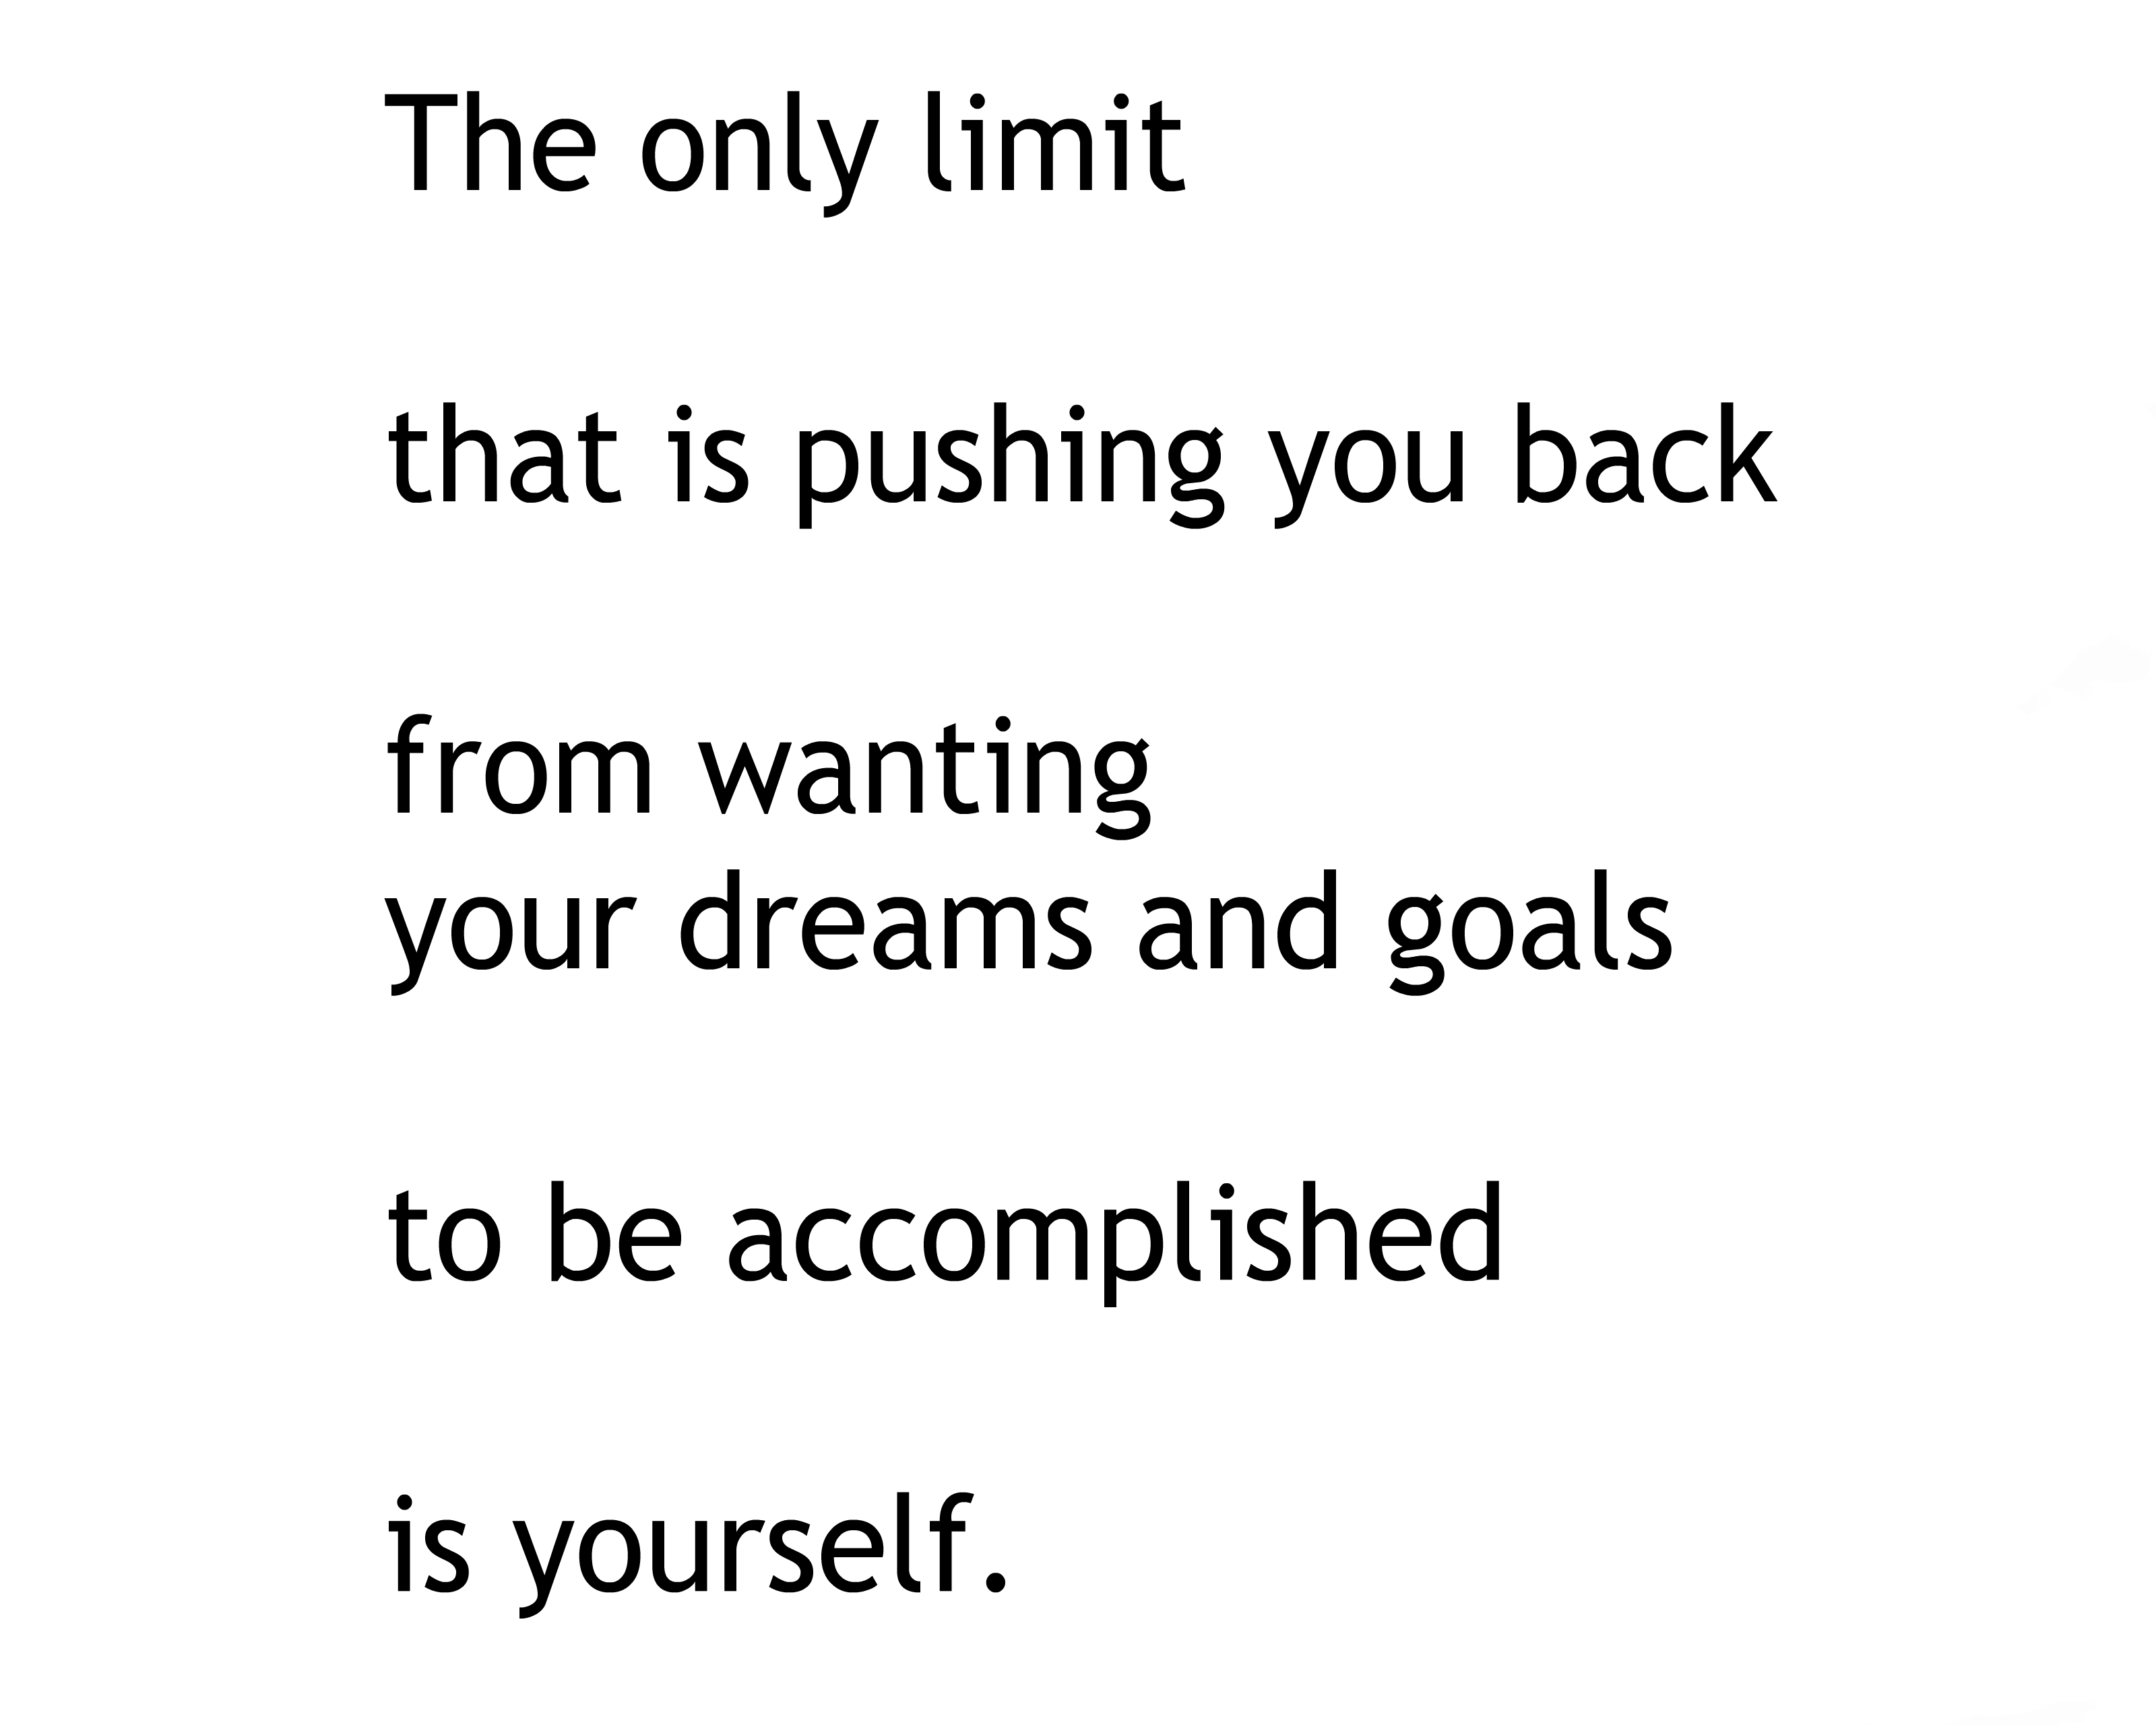 [Image] The Only Limit Is You.